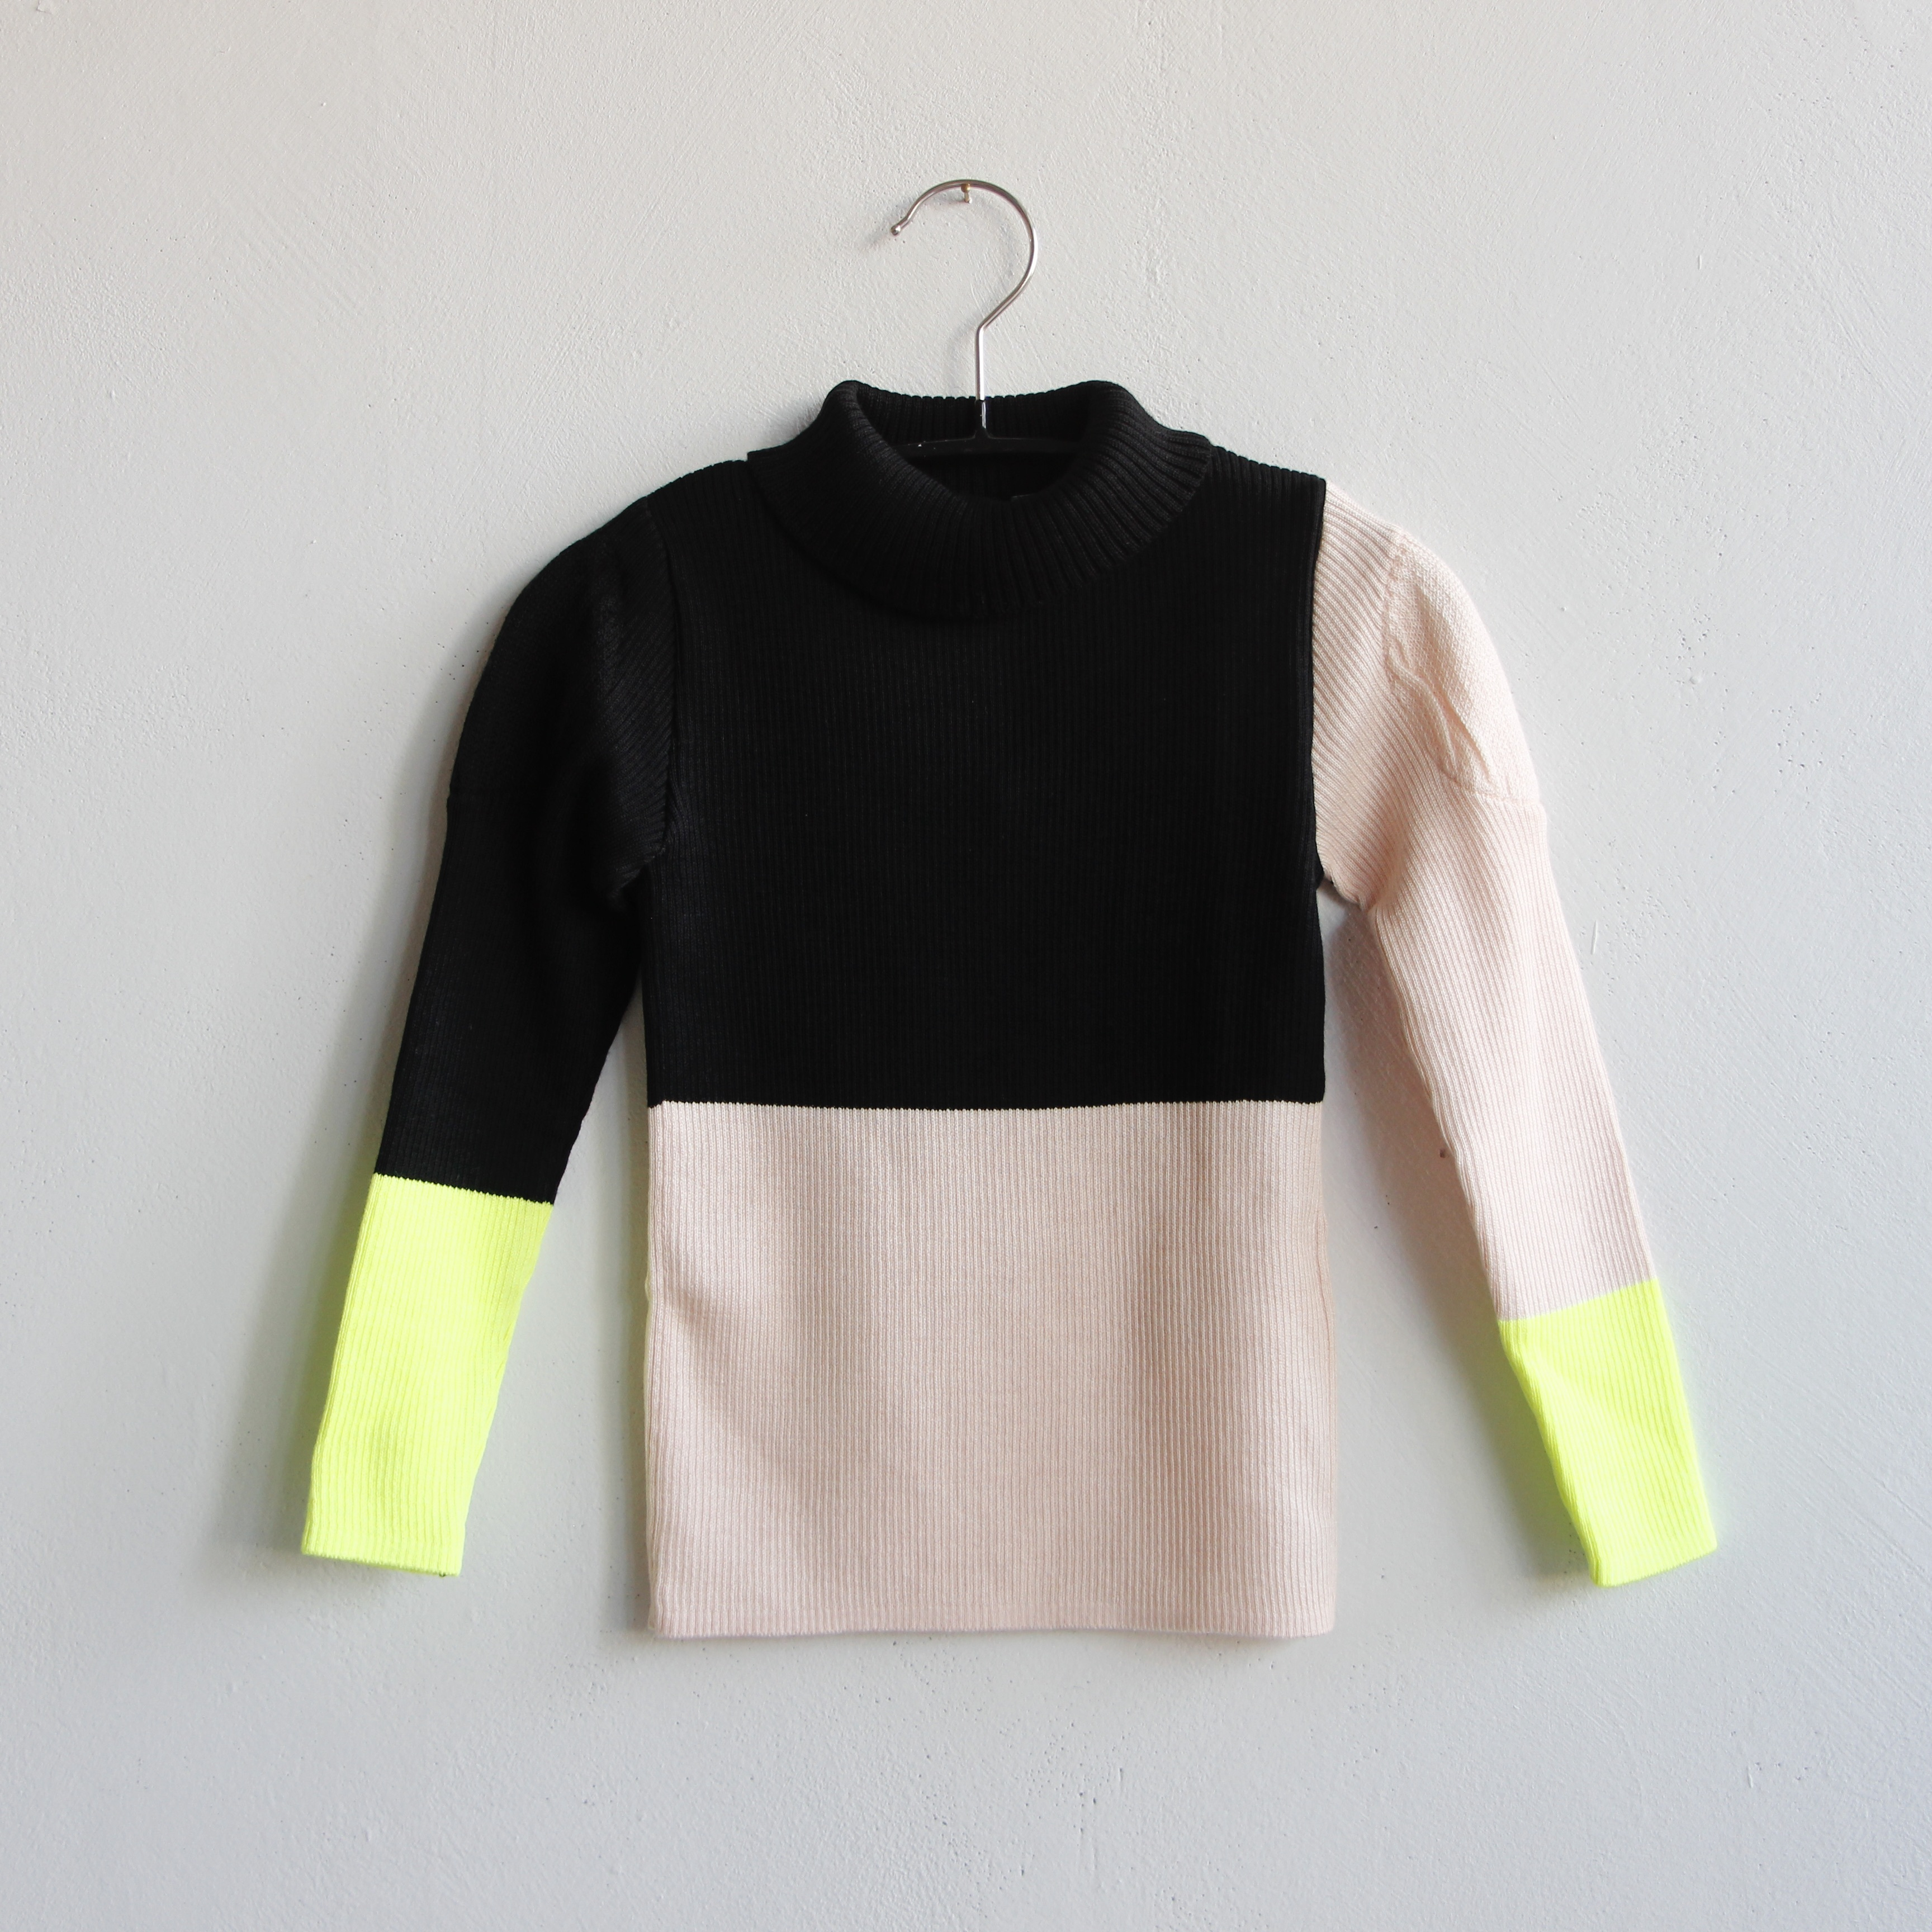 《frankygrow 2020AW》MULTI COLOR SWELL SHOULDER HIGH-NECK KNIT / black × pink × yellow / LL